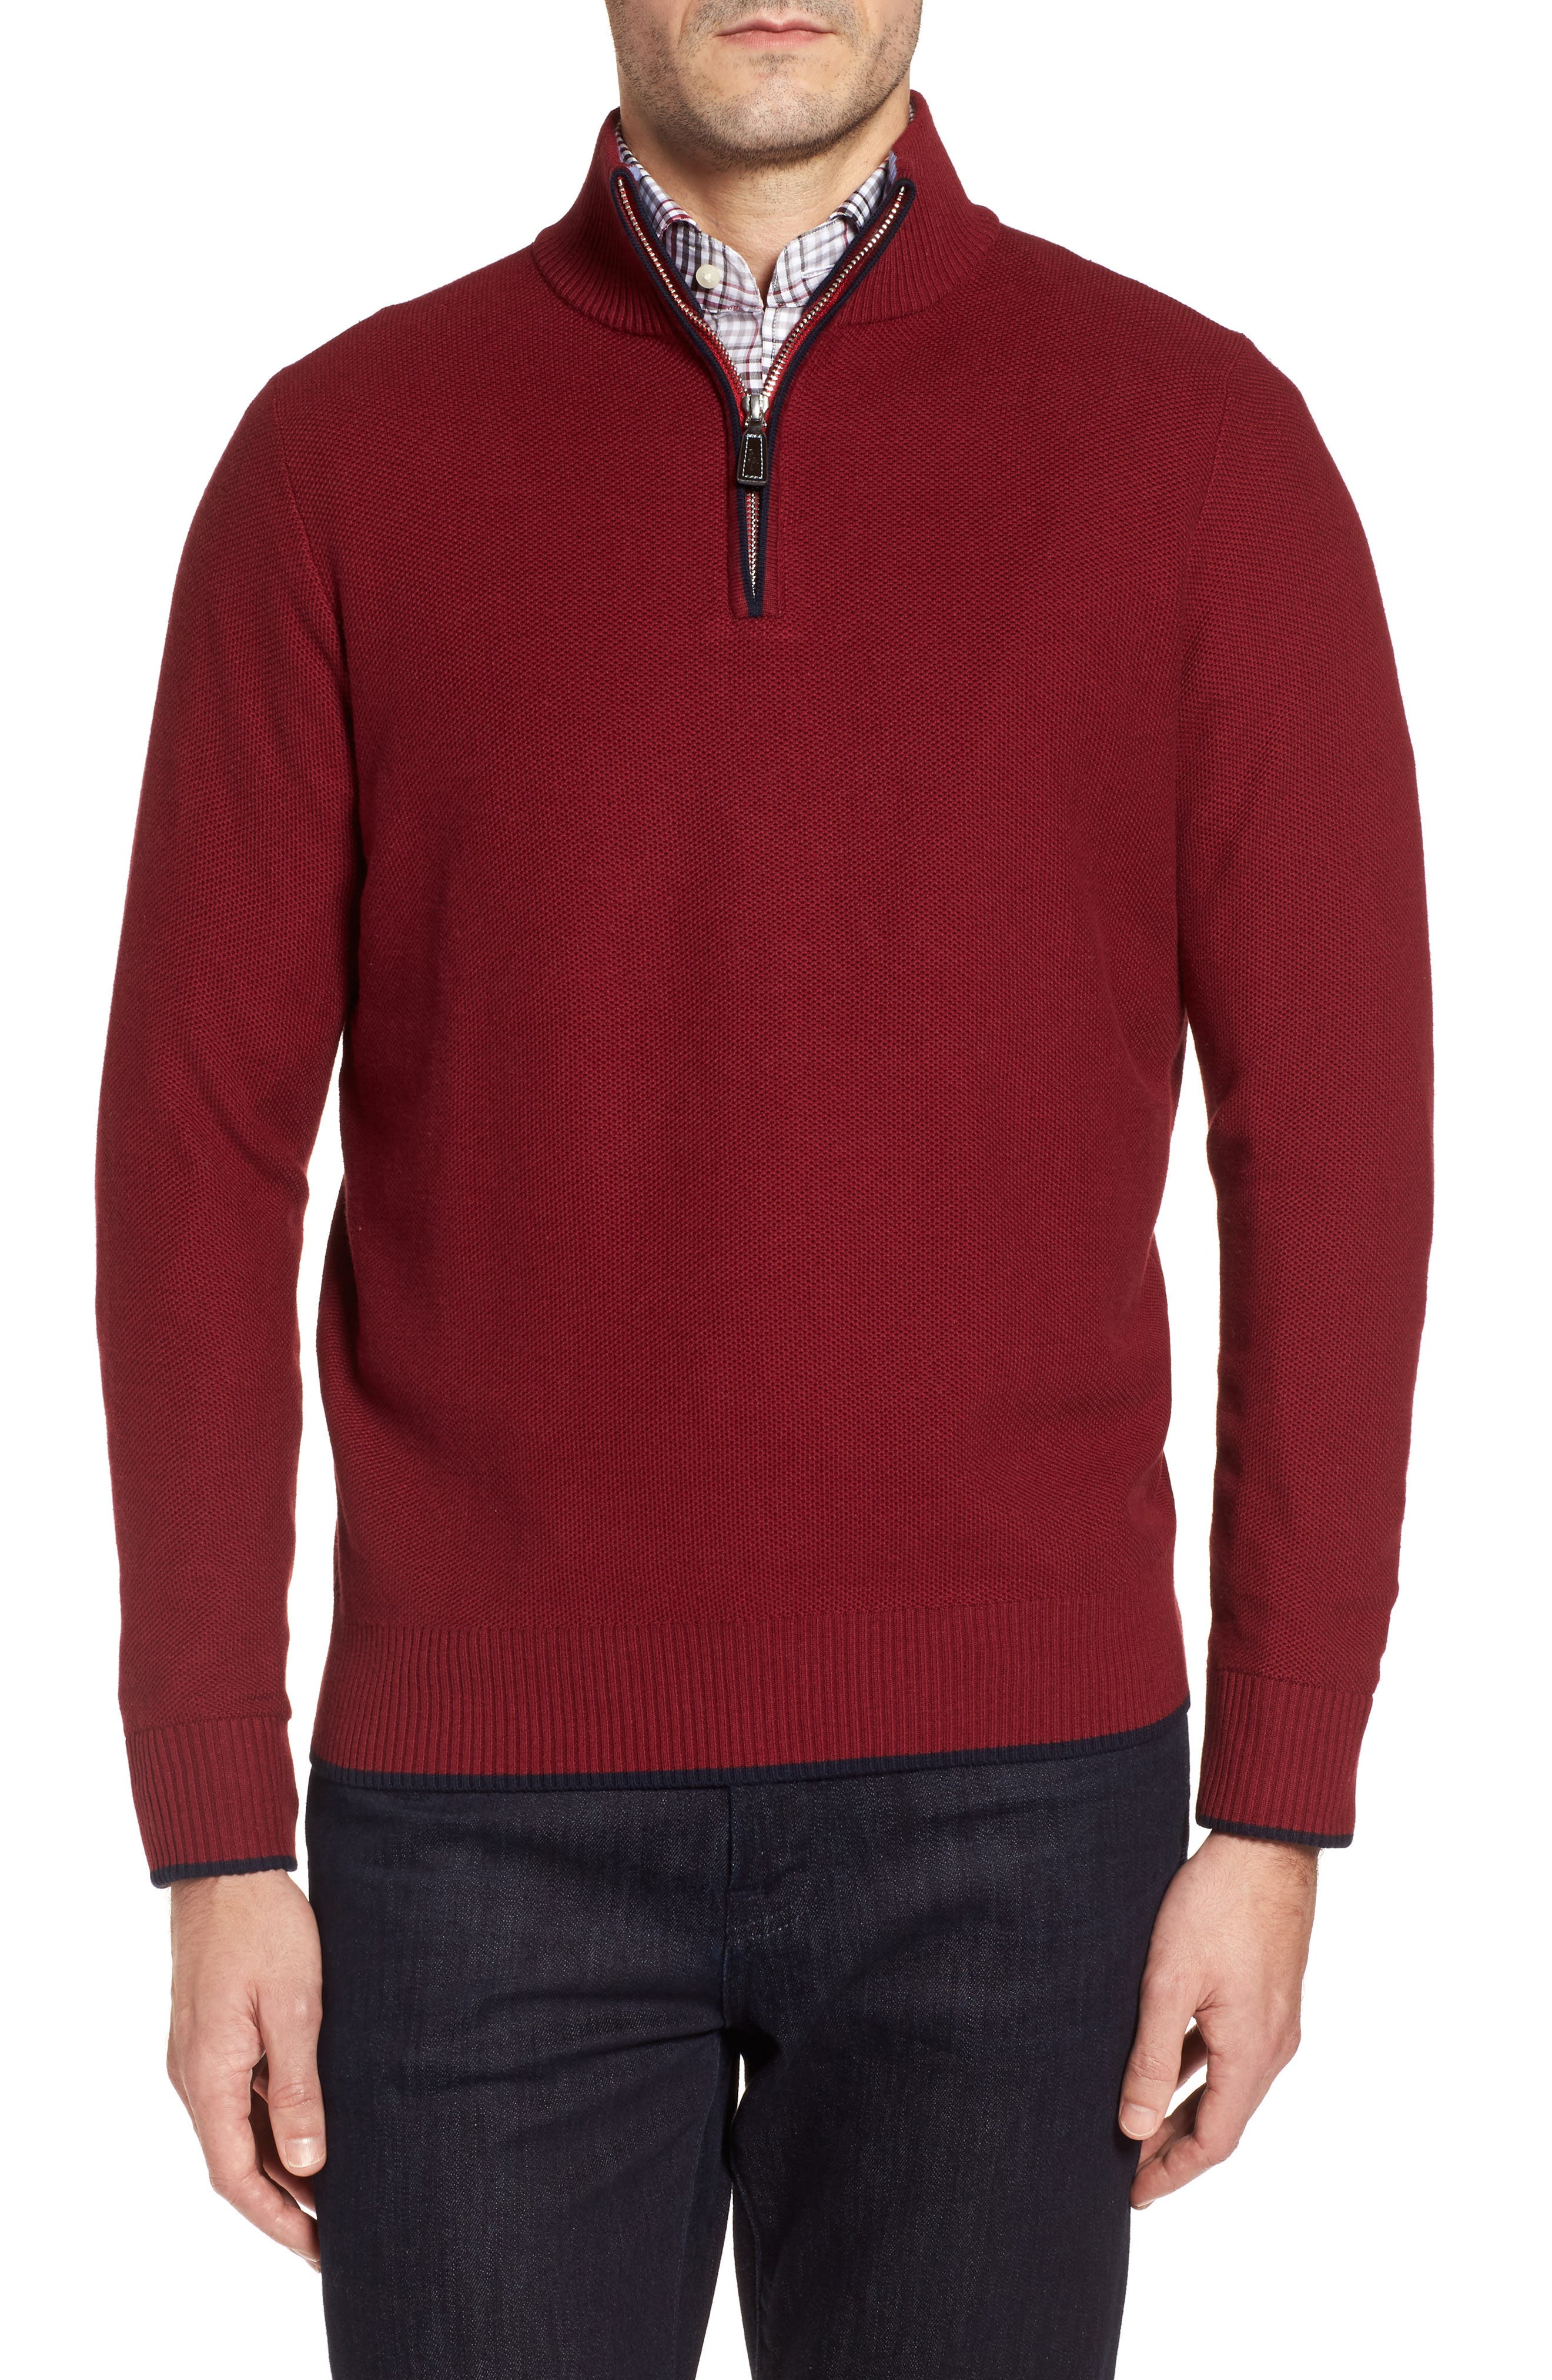 Main Image - TailorByrd Prien Tipped Quarter Zip Sweater